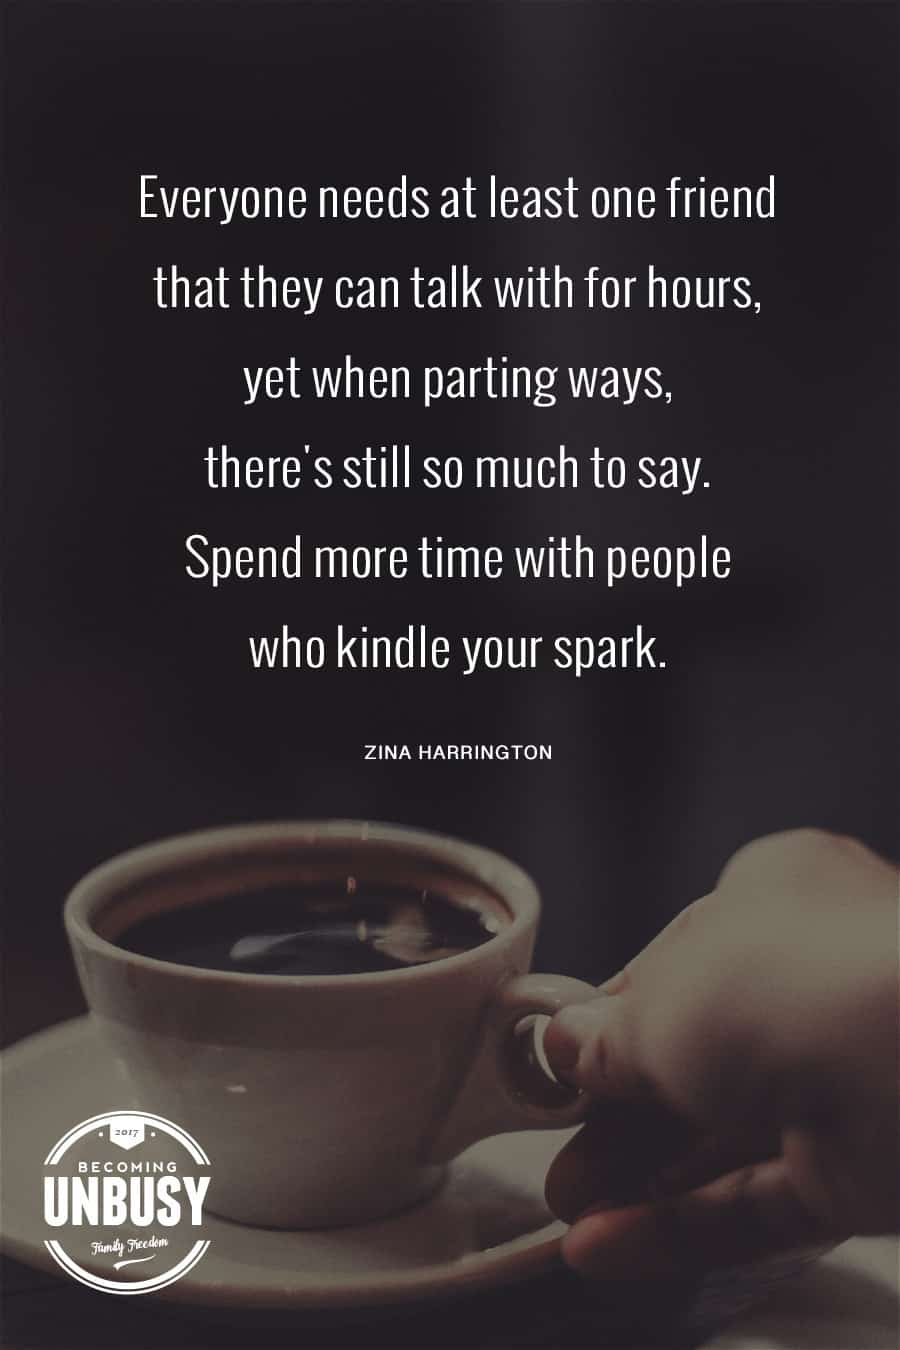 10 Good Morning Quotes - Everyone needs at least one friend that they can talk with for hours, yet when parting ways, there's still so much to say. Spend more time with people who kindle your spark. #lifequotes #quotes #goodmorningquotes #coffeequotes *Start the day off right with these morning inspirational quotes. Love this good morning motivation!